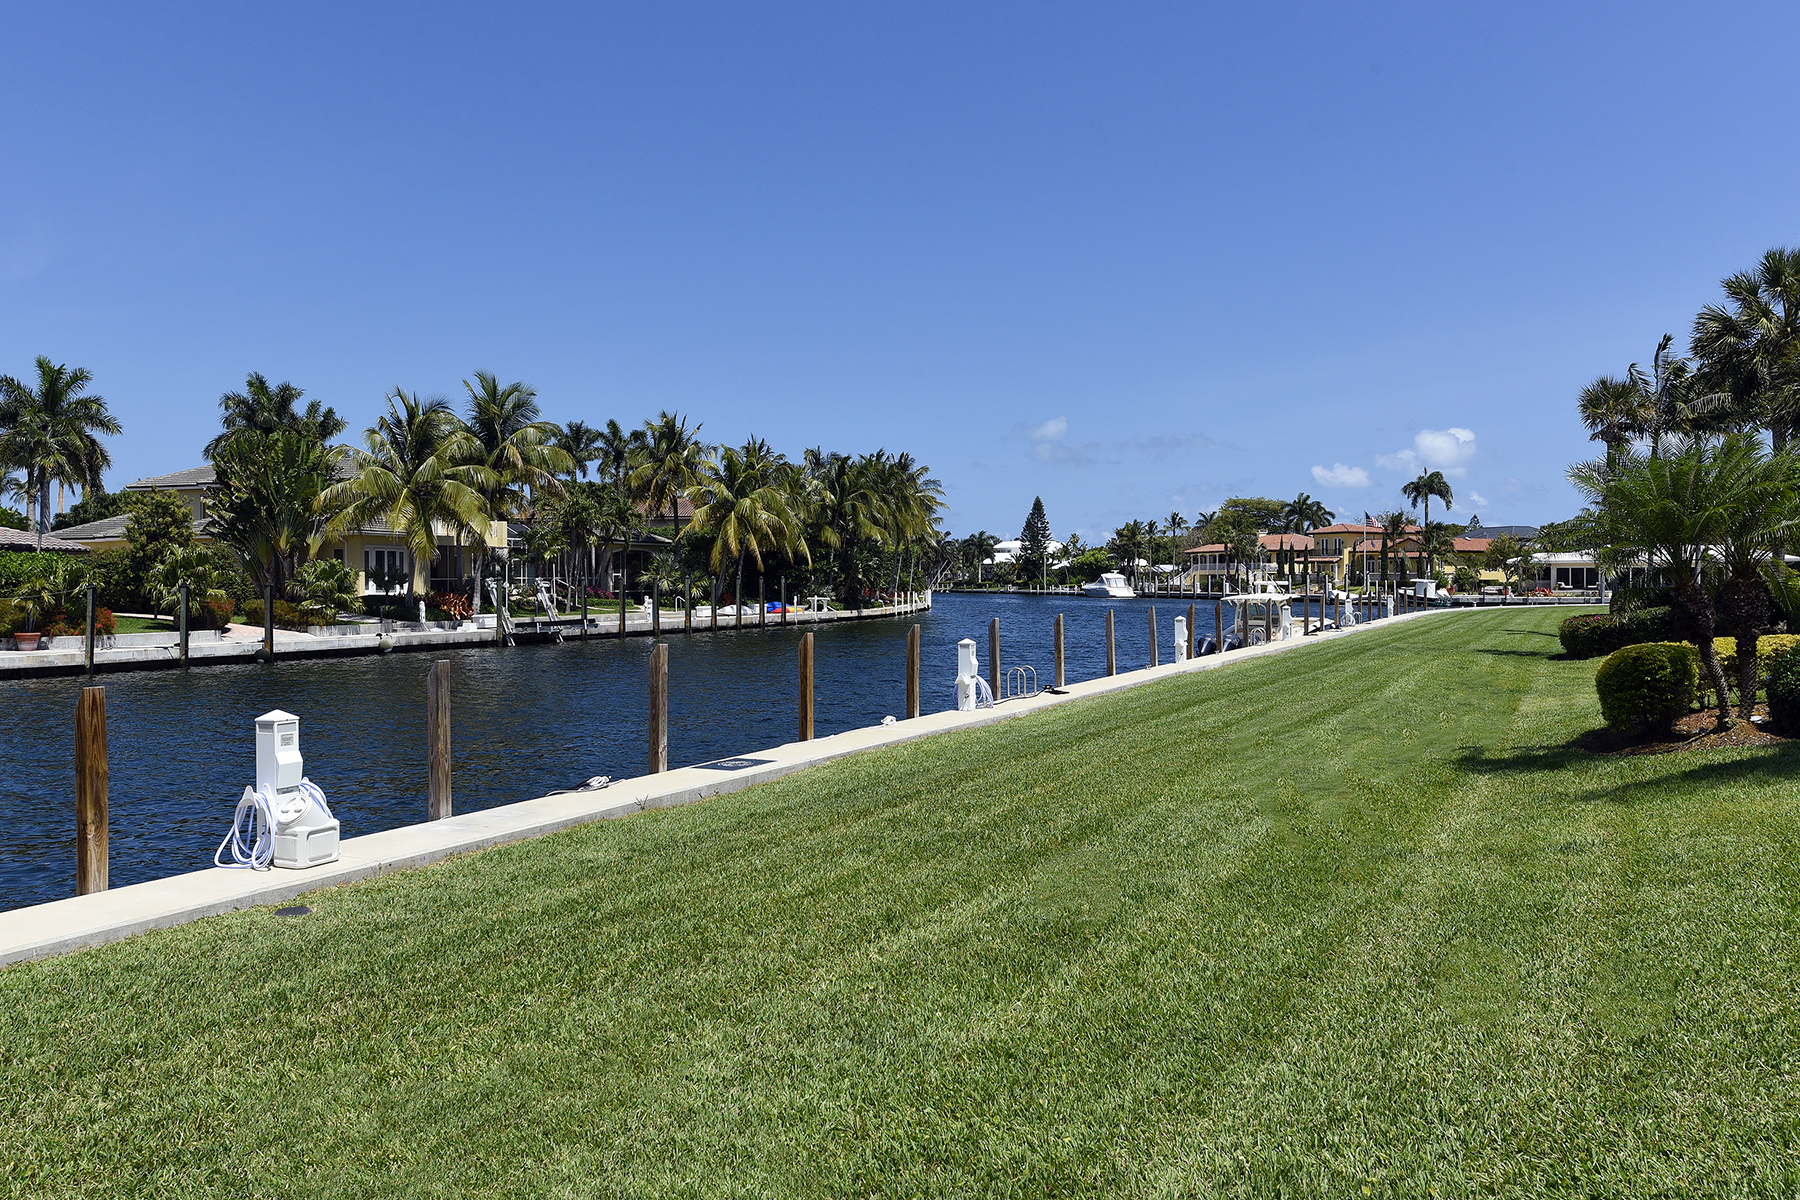 Condominium for Sale at Waterfront Condominium at Ocean Reef 34 Ocean Reef Drive Cay Harbor 2D Ocean Reef Community, Key Largo, Florida, 33037 United States